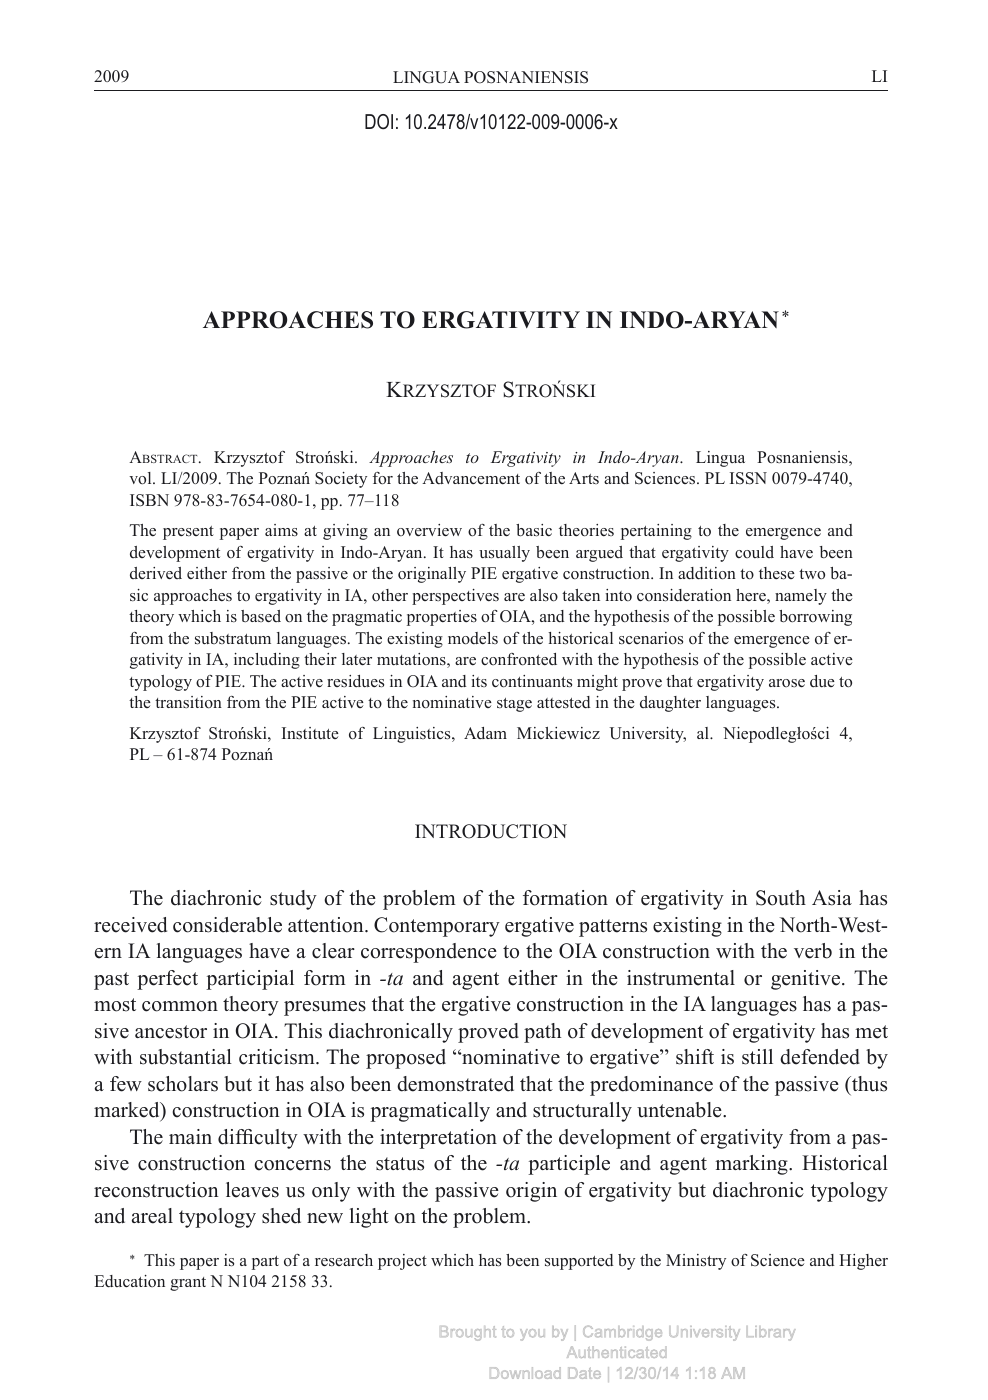 Approaches to Ergativity in Indo-Aryan – topic of research